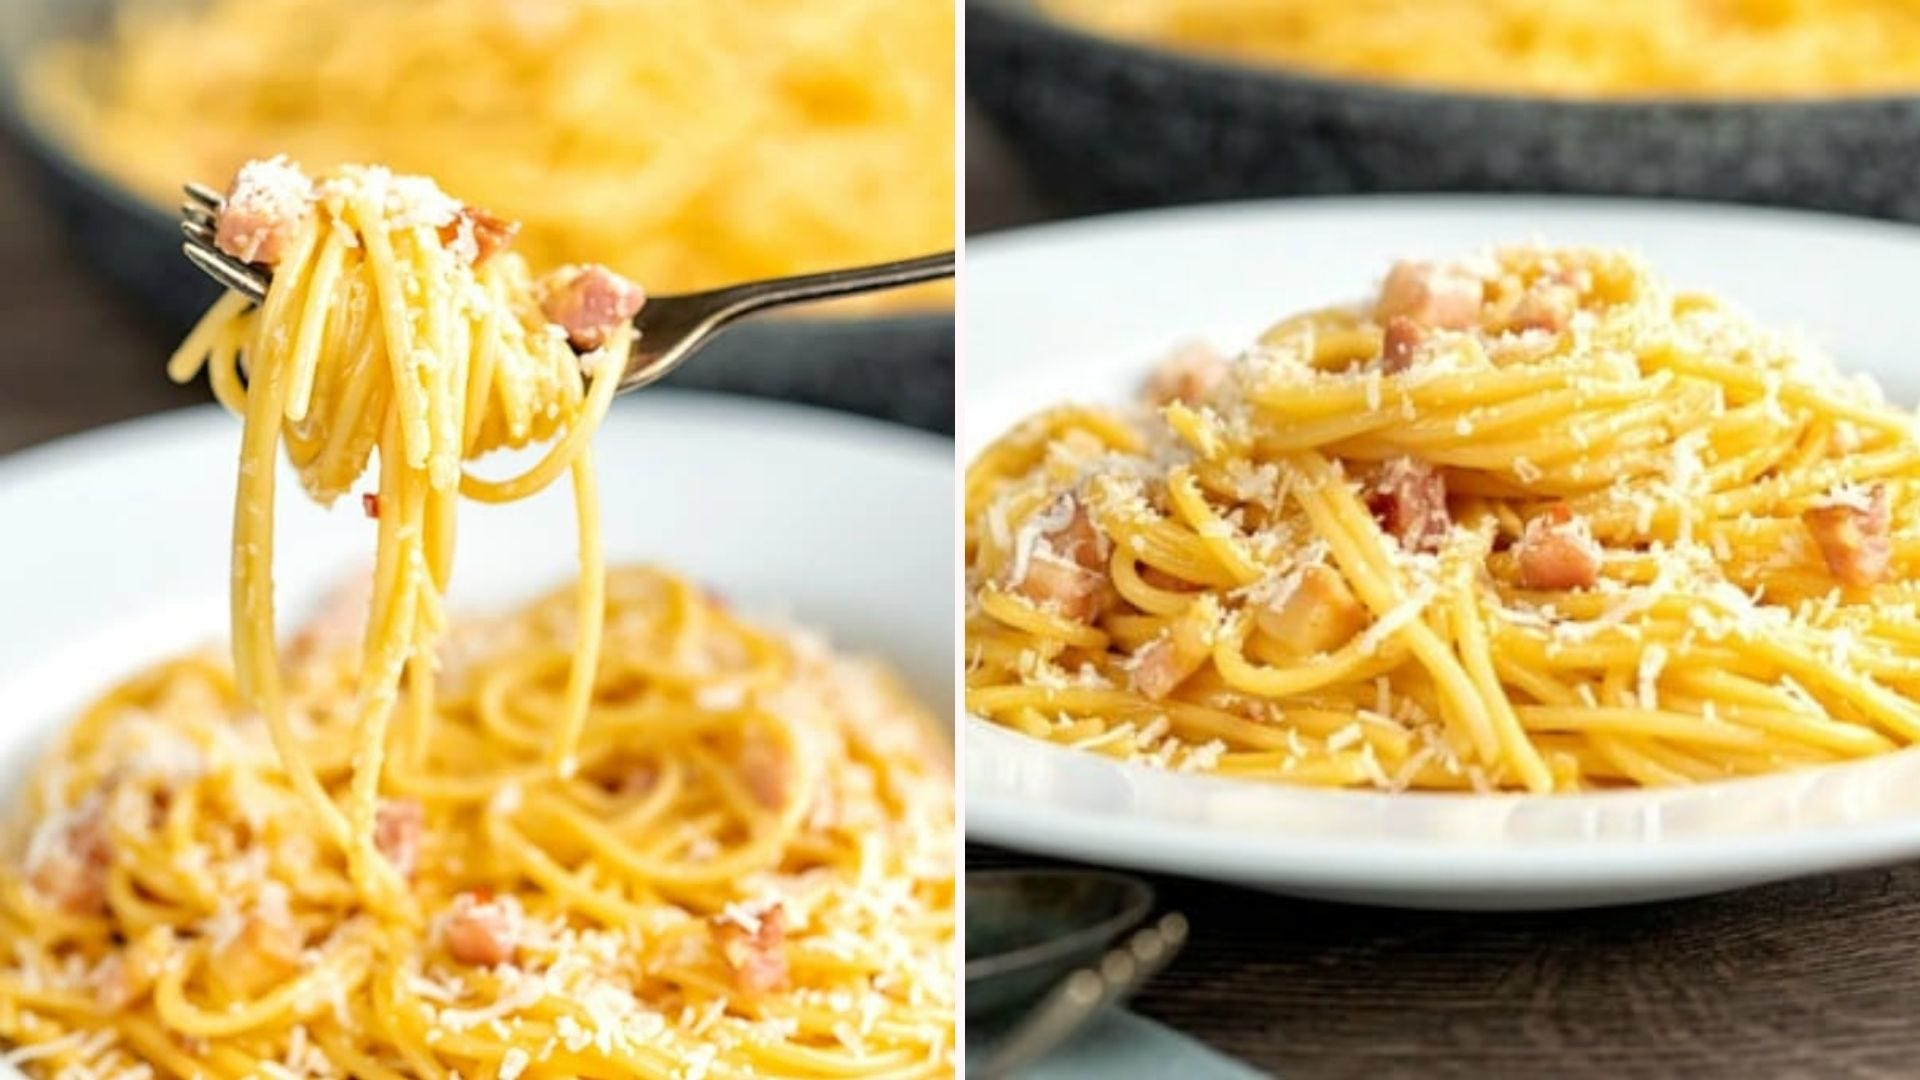 Two images: The left is of a fork picking up a freshly made pasta carbonara topped with fresh parmesan and the left image is of a plate of pasta carbonara ready to be eaten.